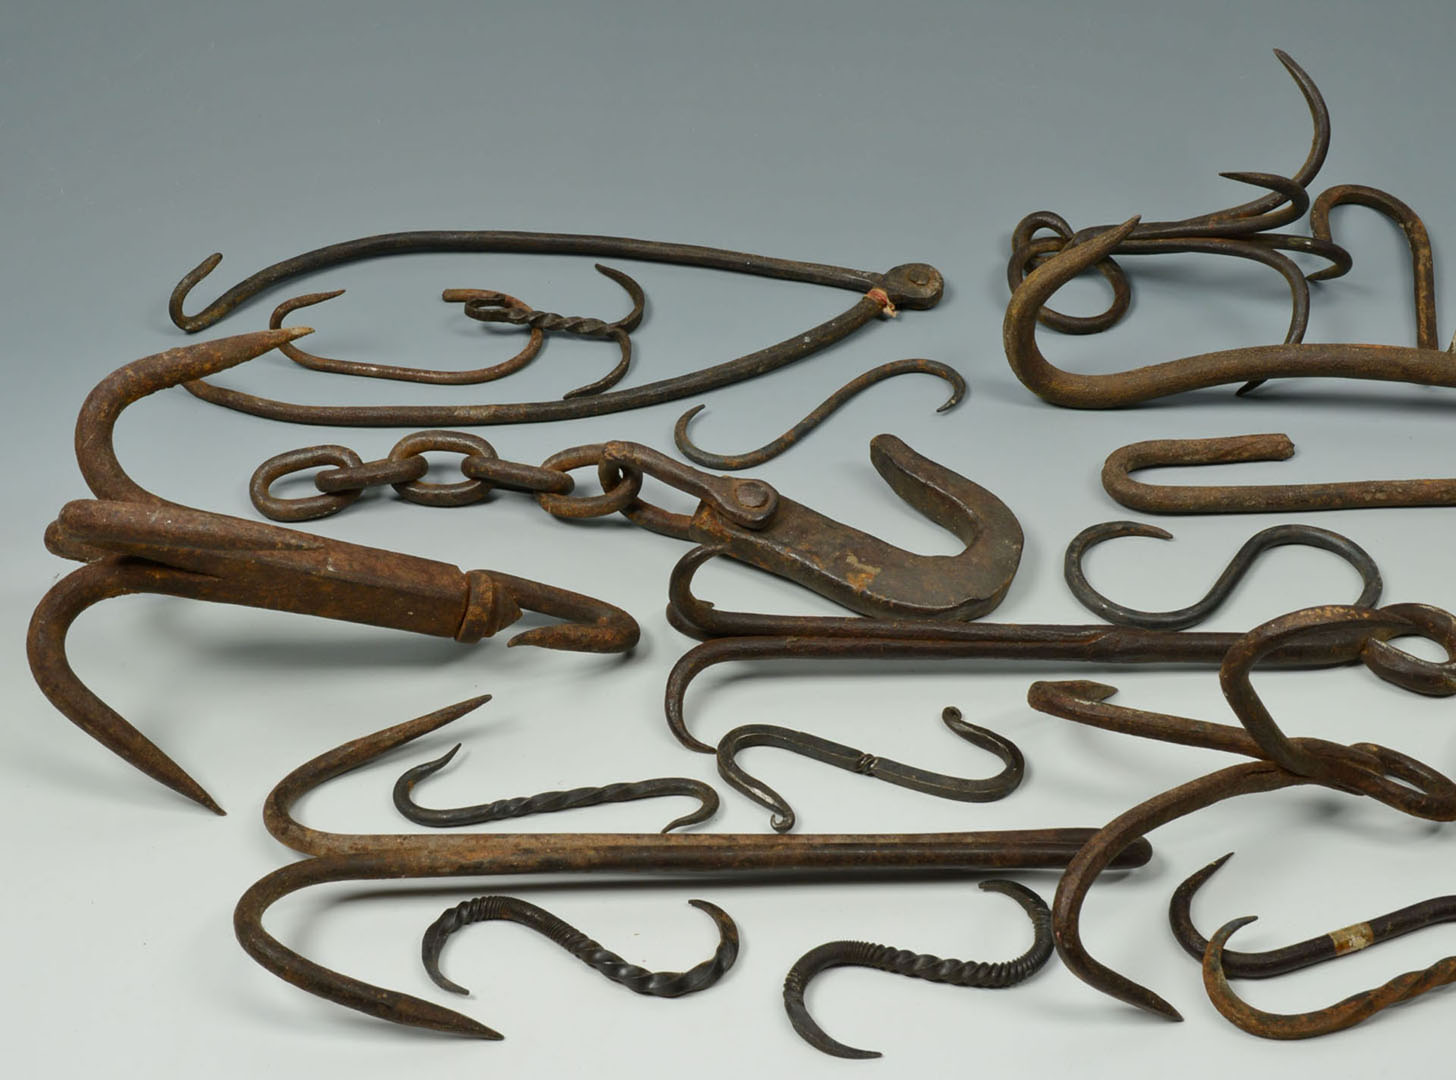 Lot 2872302: Grouping of Early Iron, Mostly Hearth Related